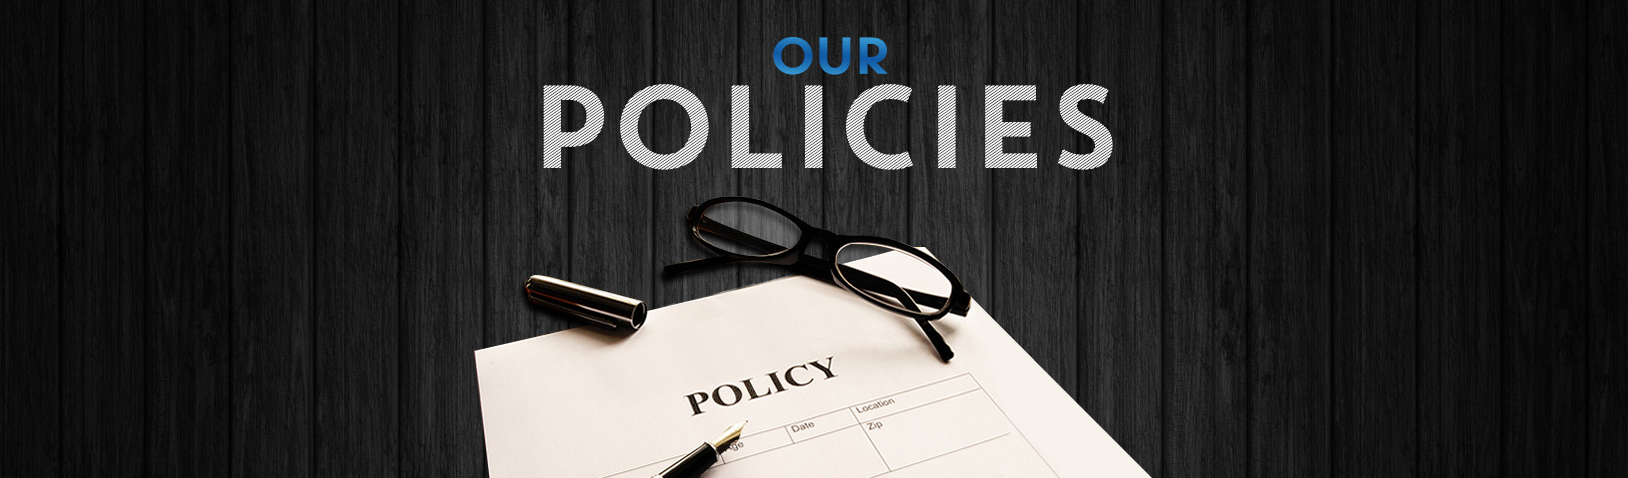 policy_banner